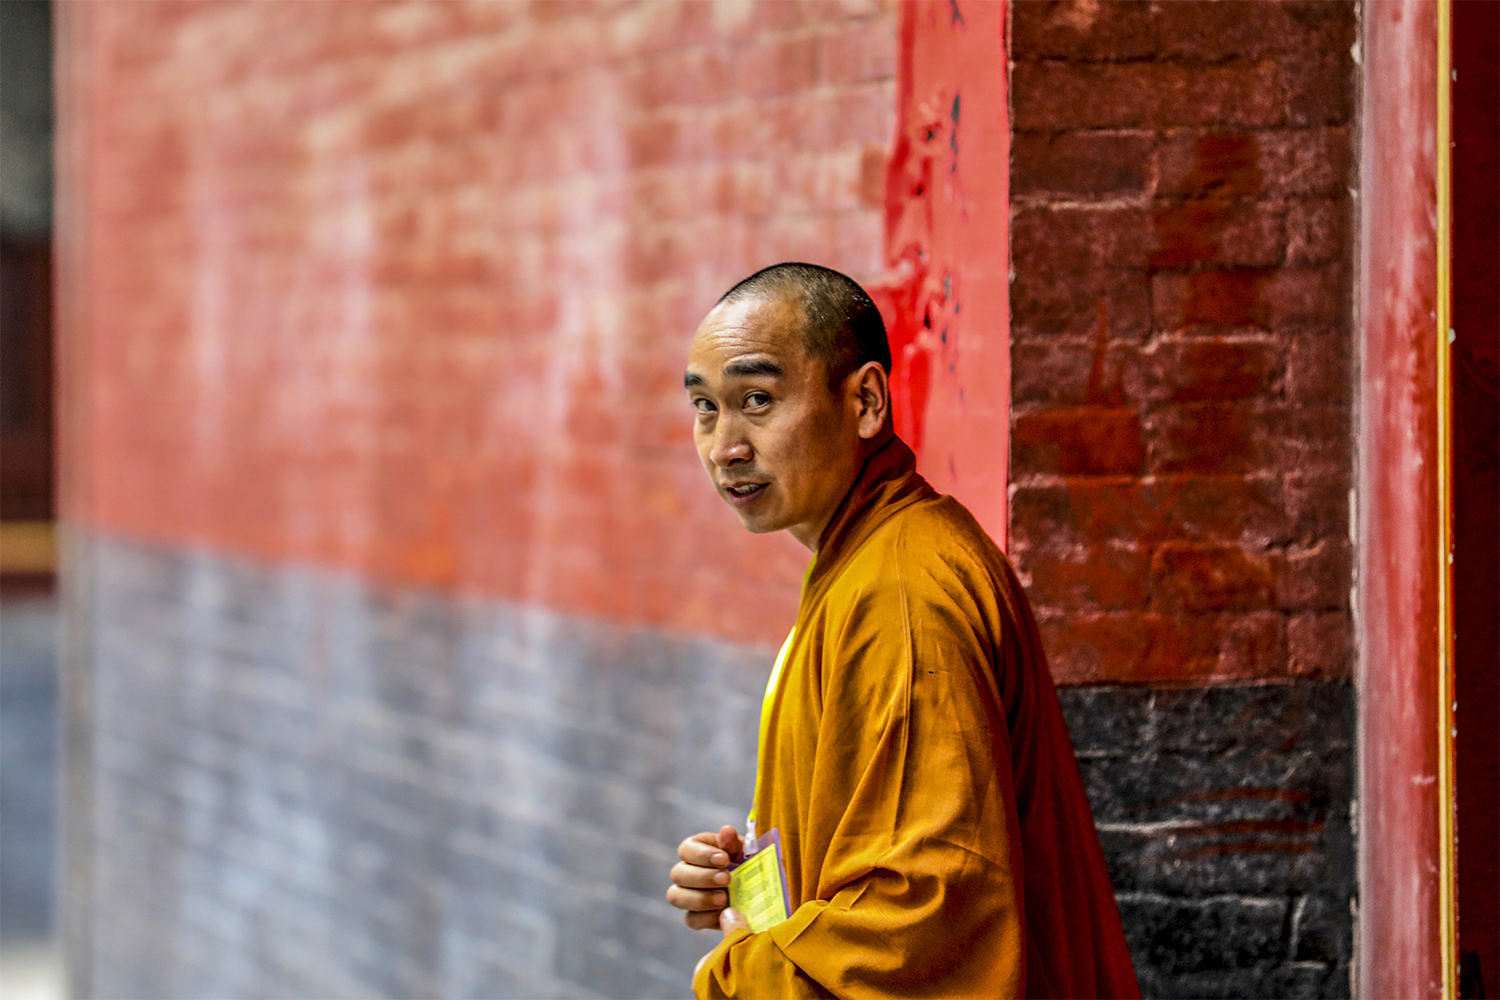 Monk standing near a red wall.